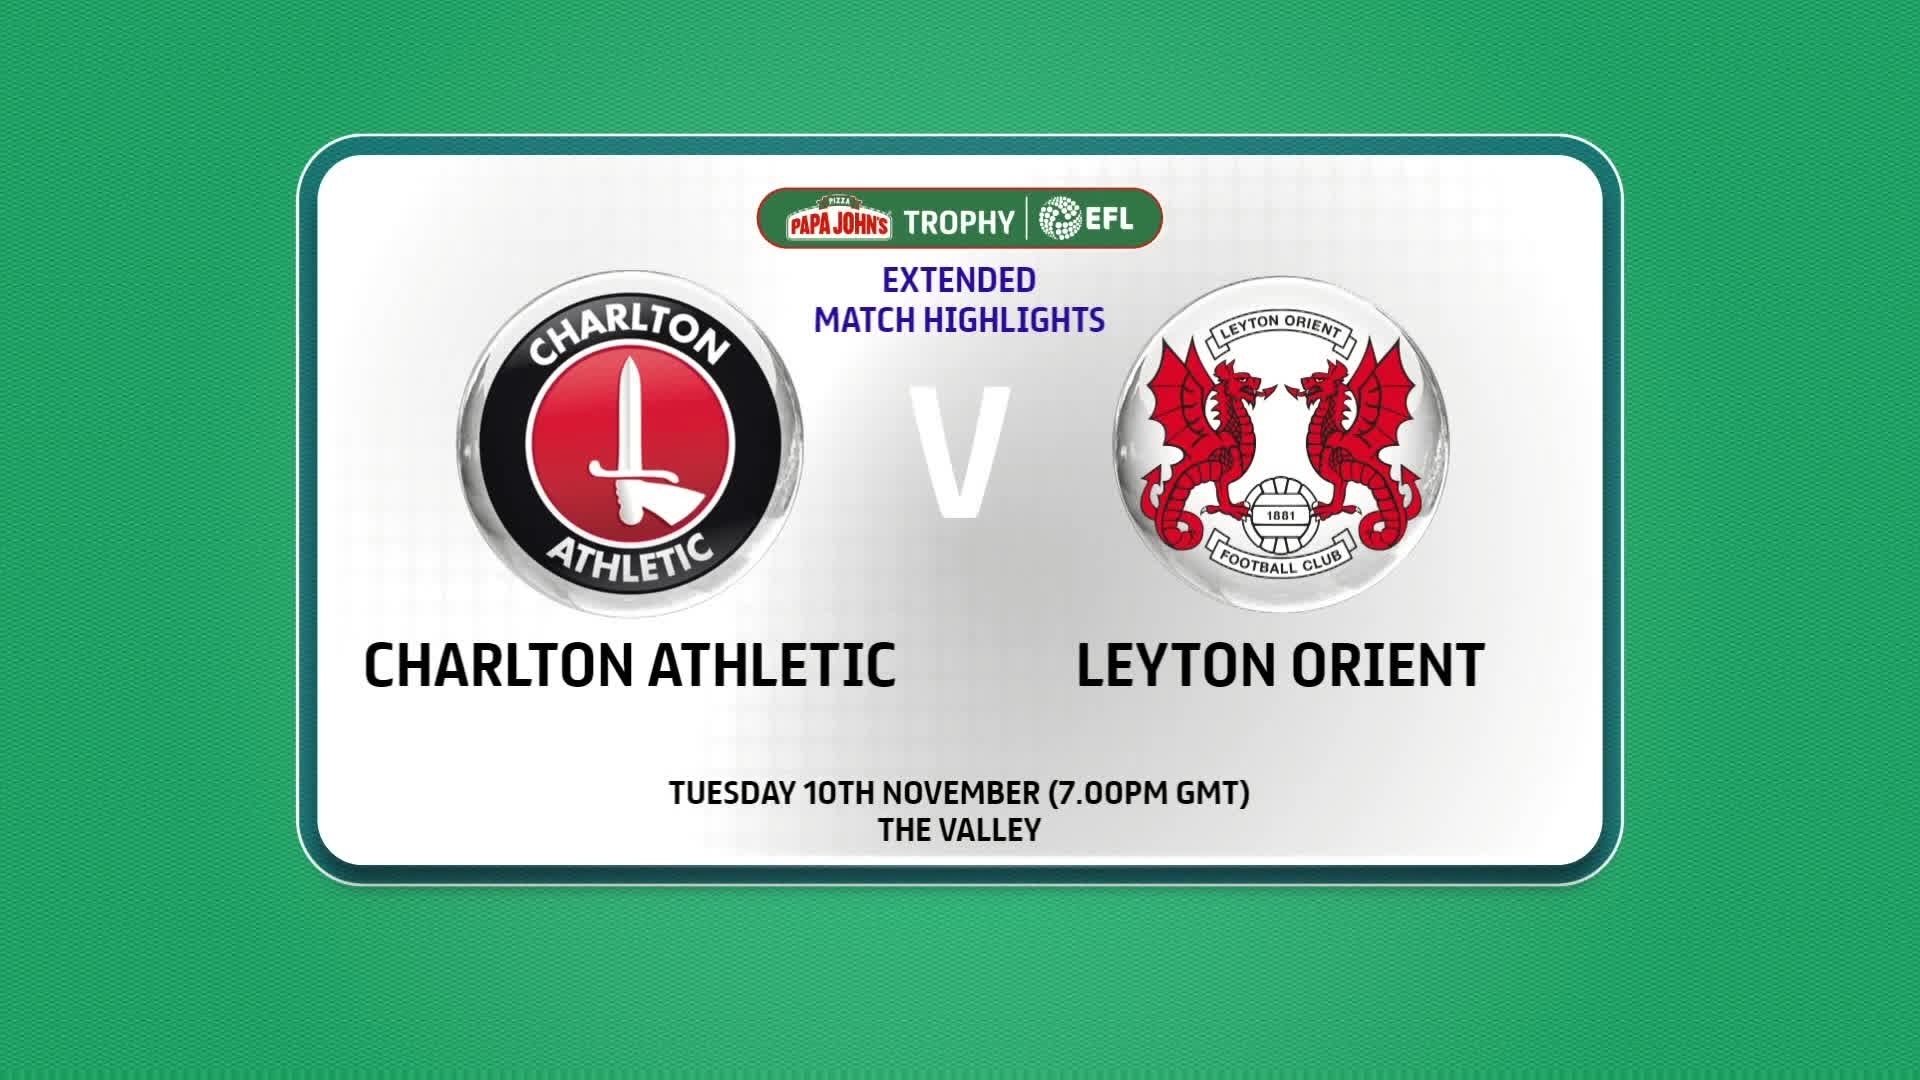 EXTENDED HIGHLIGHTS | Charlton 3 Leyton Orient 1 (November 2020)